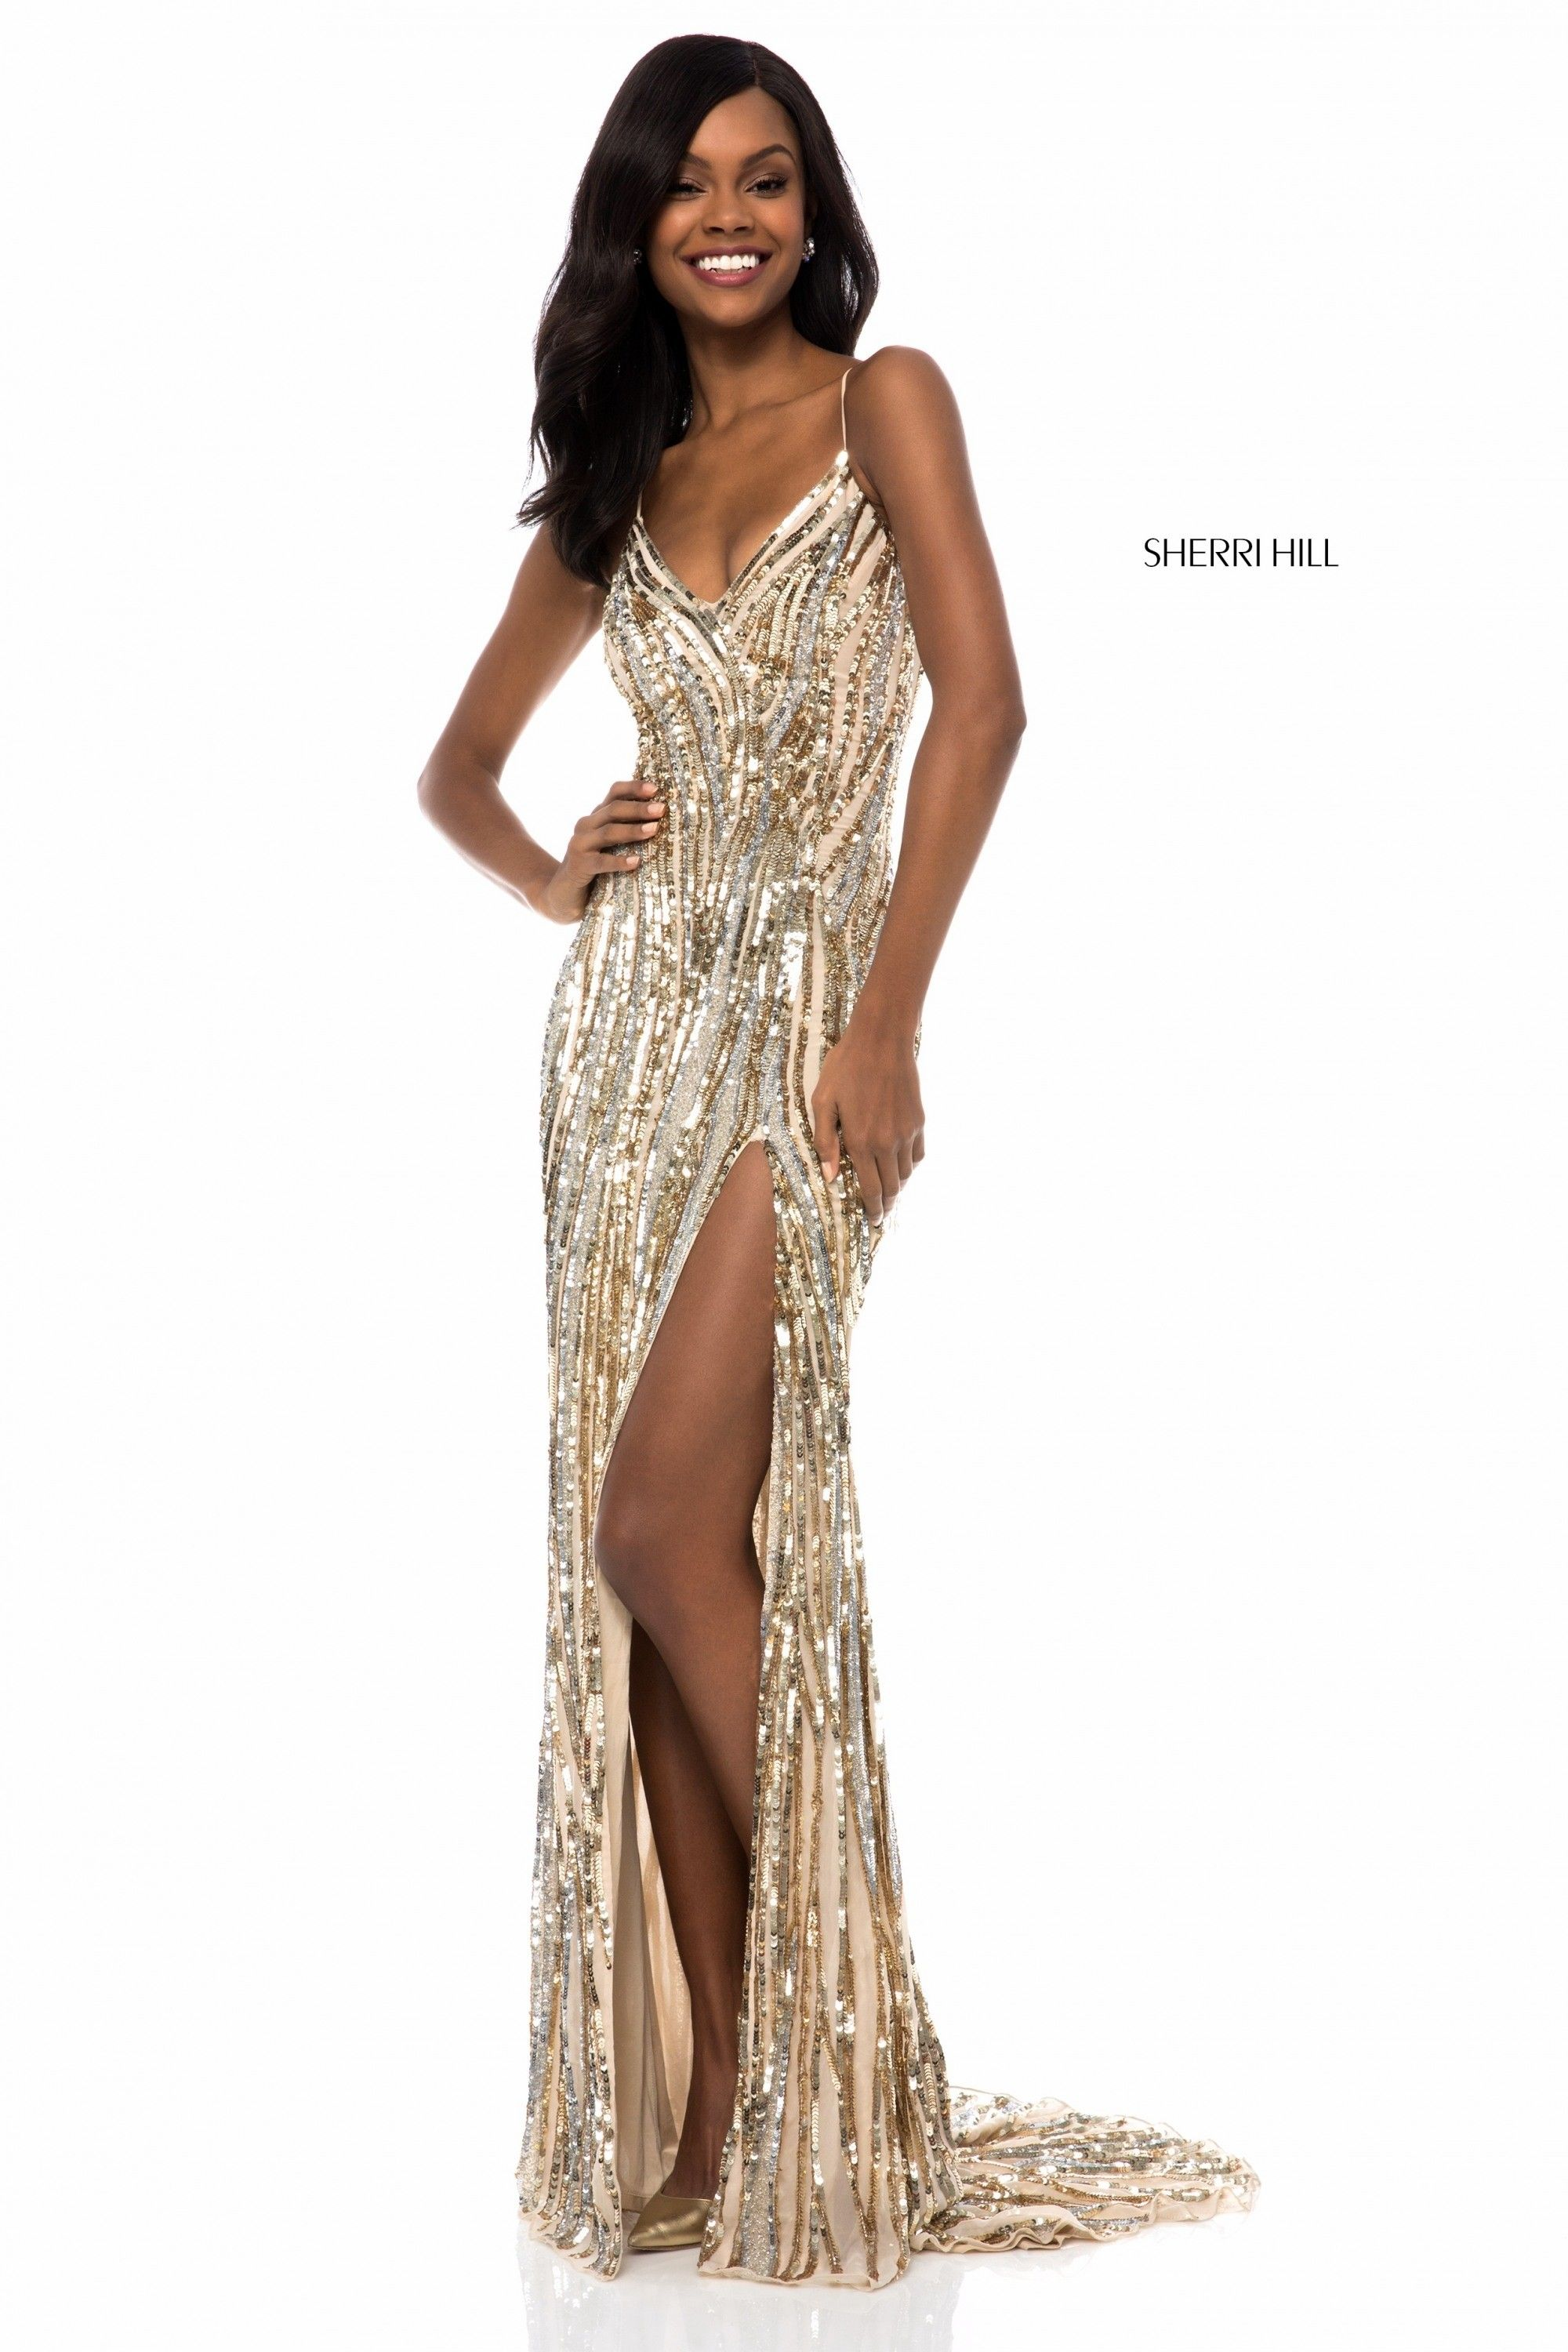 e89f939d0c6 Go wild for Sherri Hill 51743. This sultry beaded gown features lively  sequin stripes. The bodice has a V-neckline